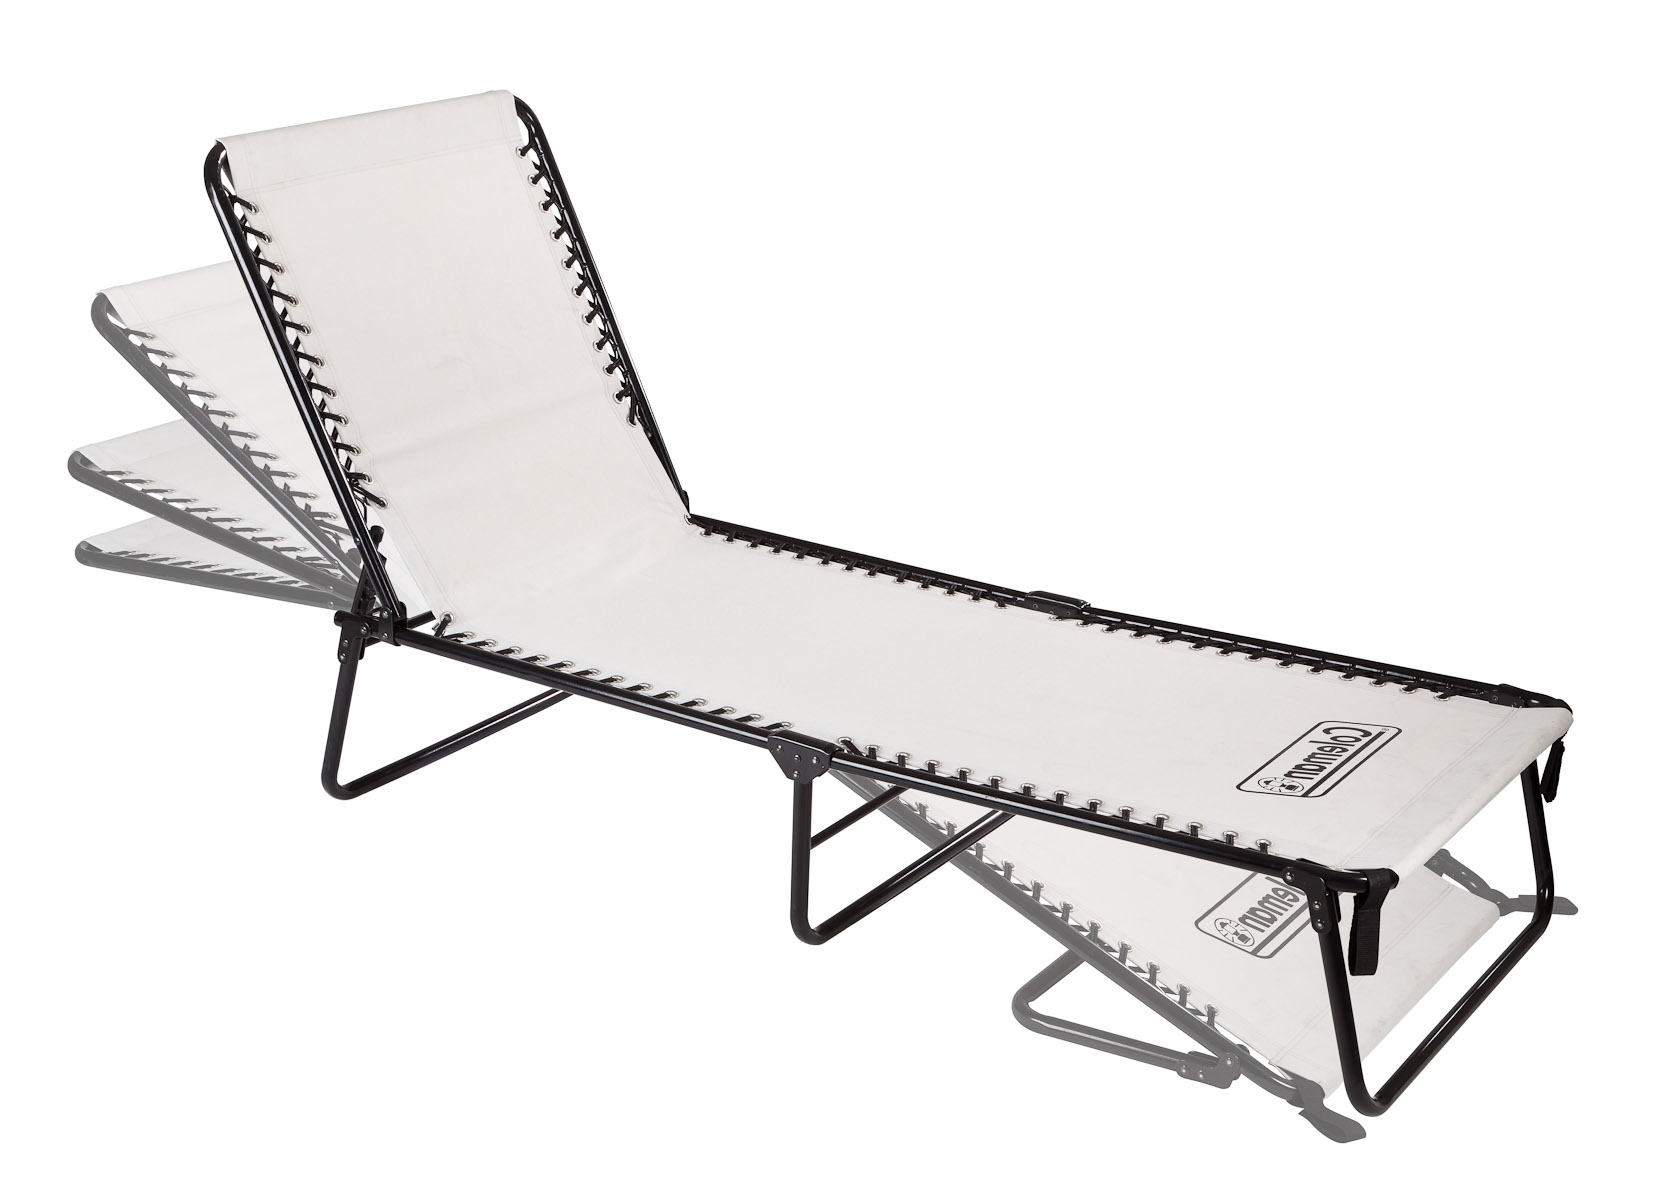 Folding Chaise Lounge Chairs Outdoor Wood Patio With Design 10 For Most Up To Date Maureen Outdoor Folding Chaise Lounge Chairs (View 1 of 15)